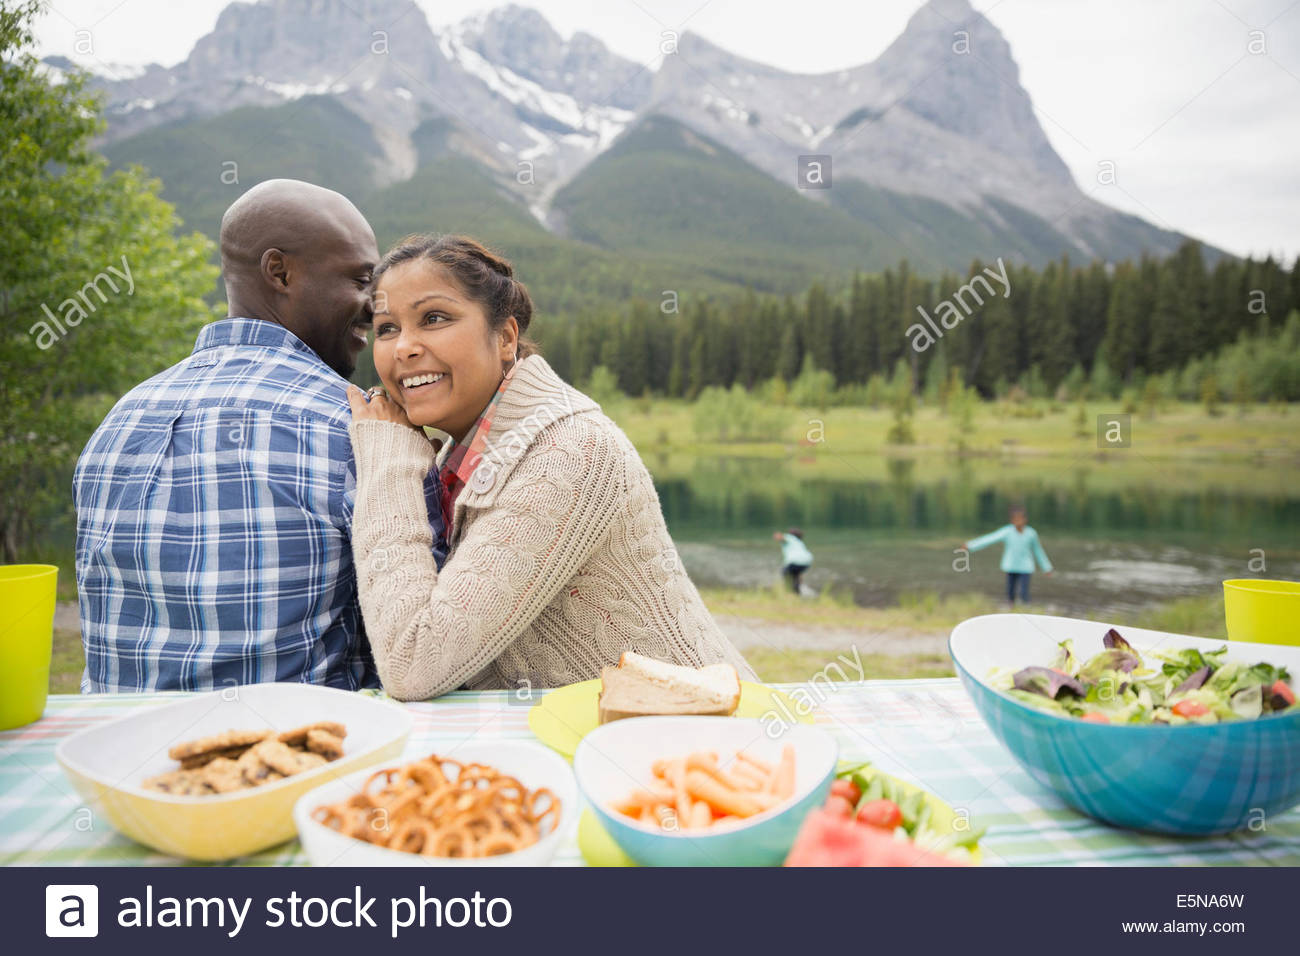 Couple sitting at picnic table near lake - Stock Image